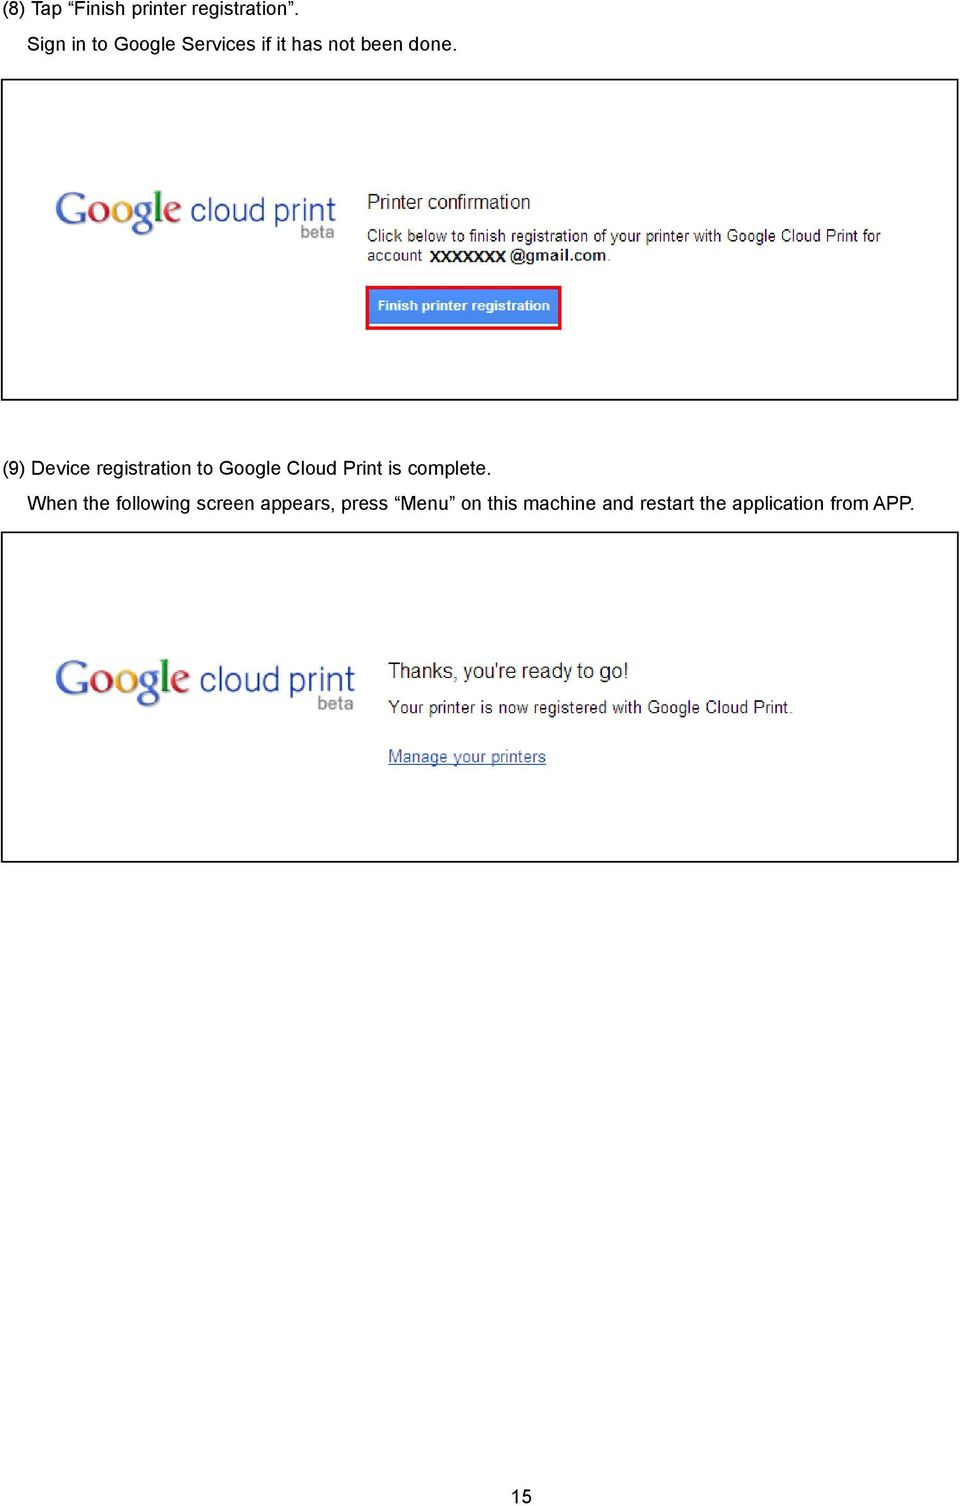 (9) Device registration to Google Cloud Print is complete.